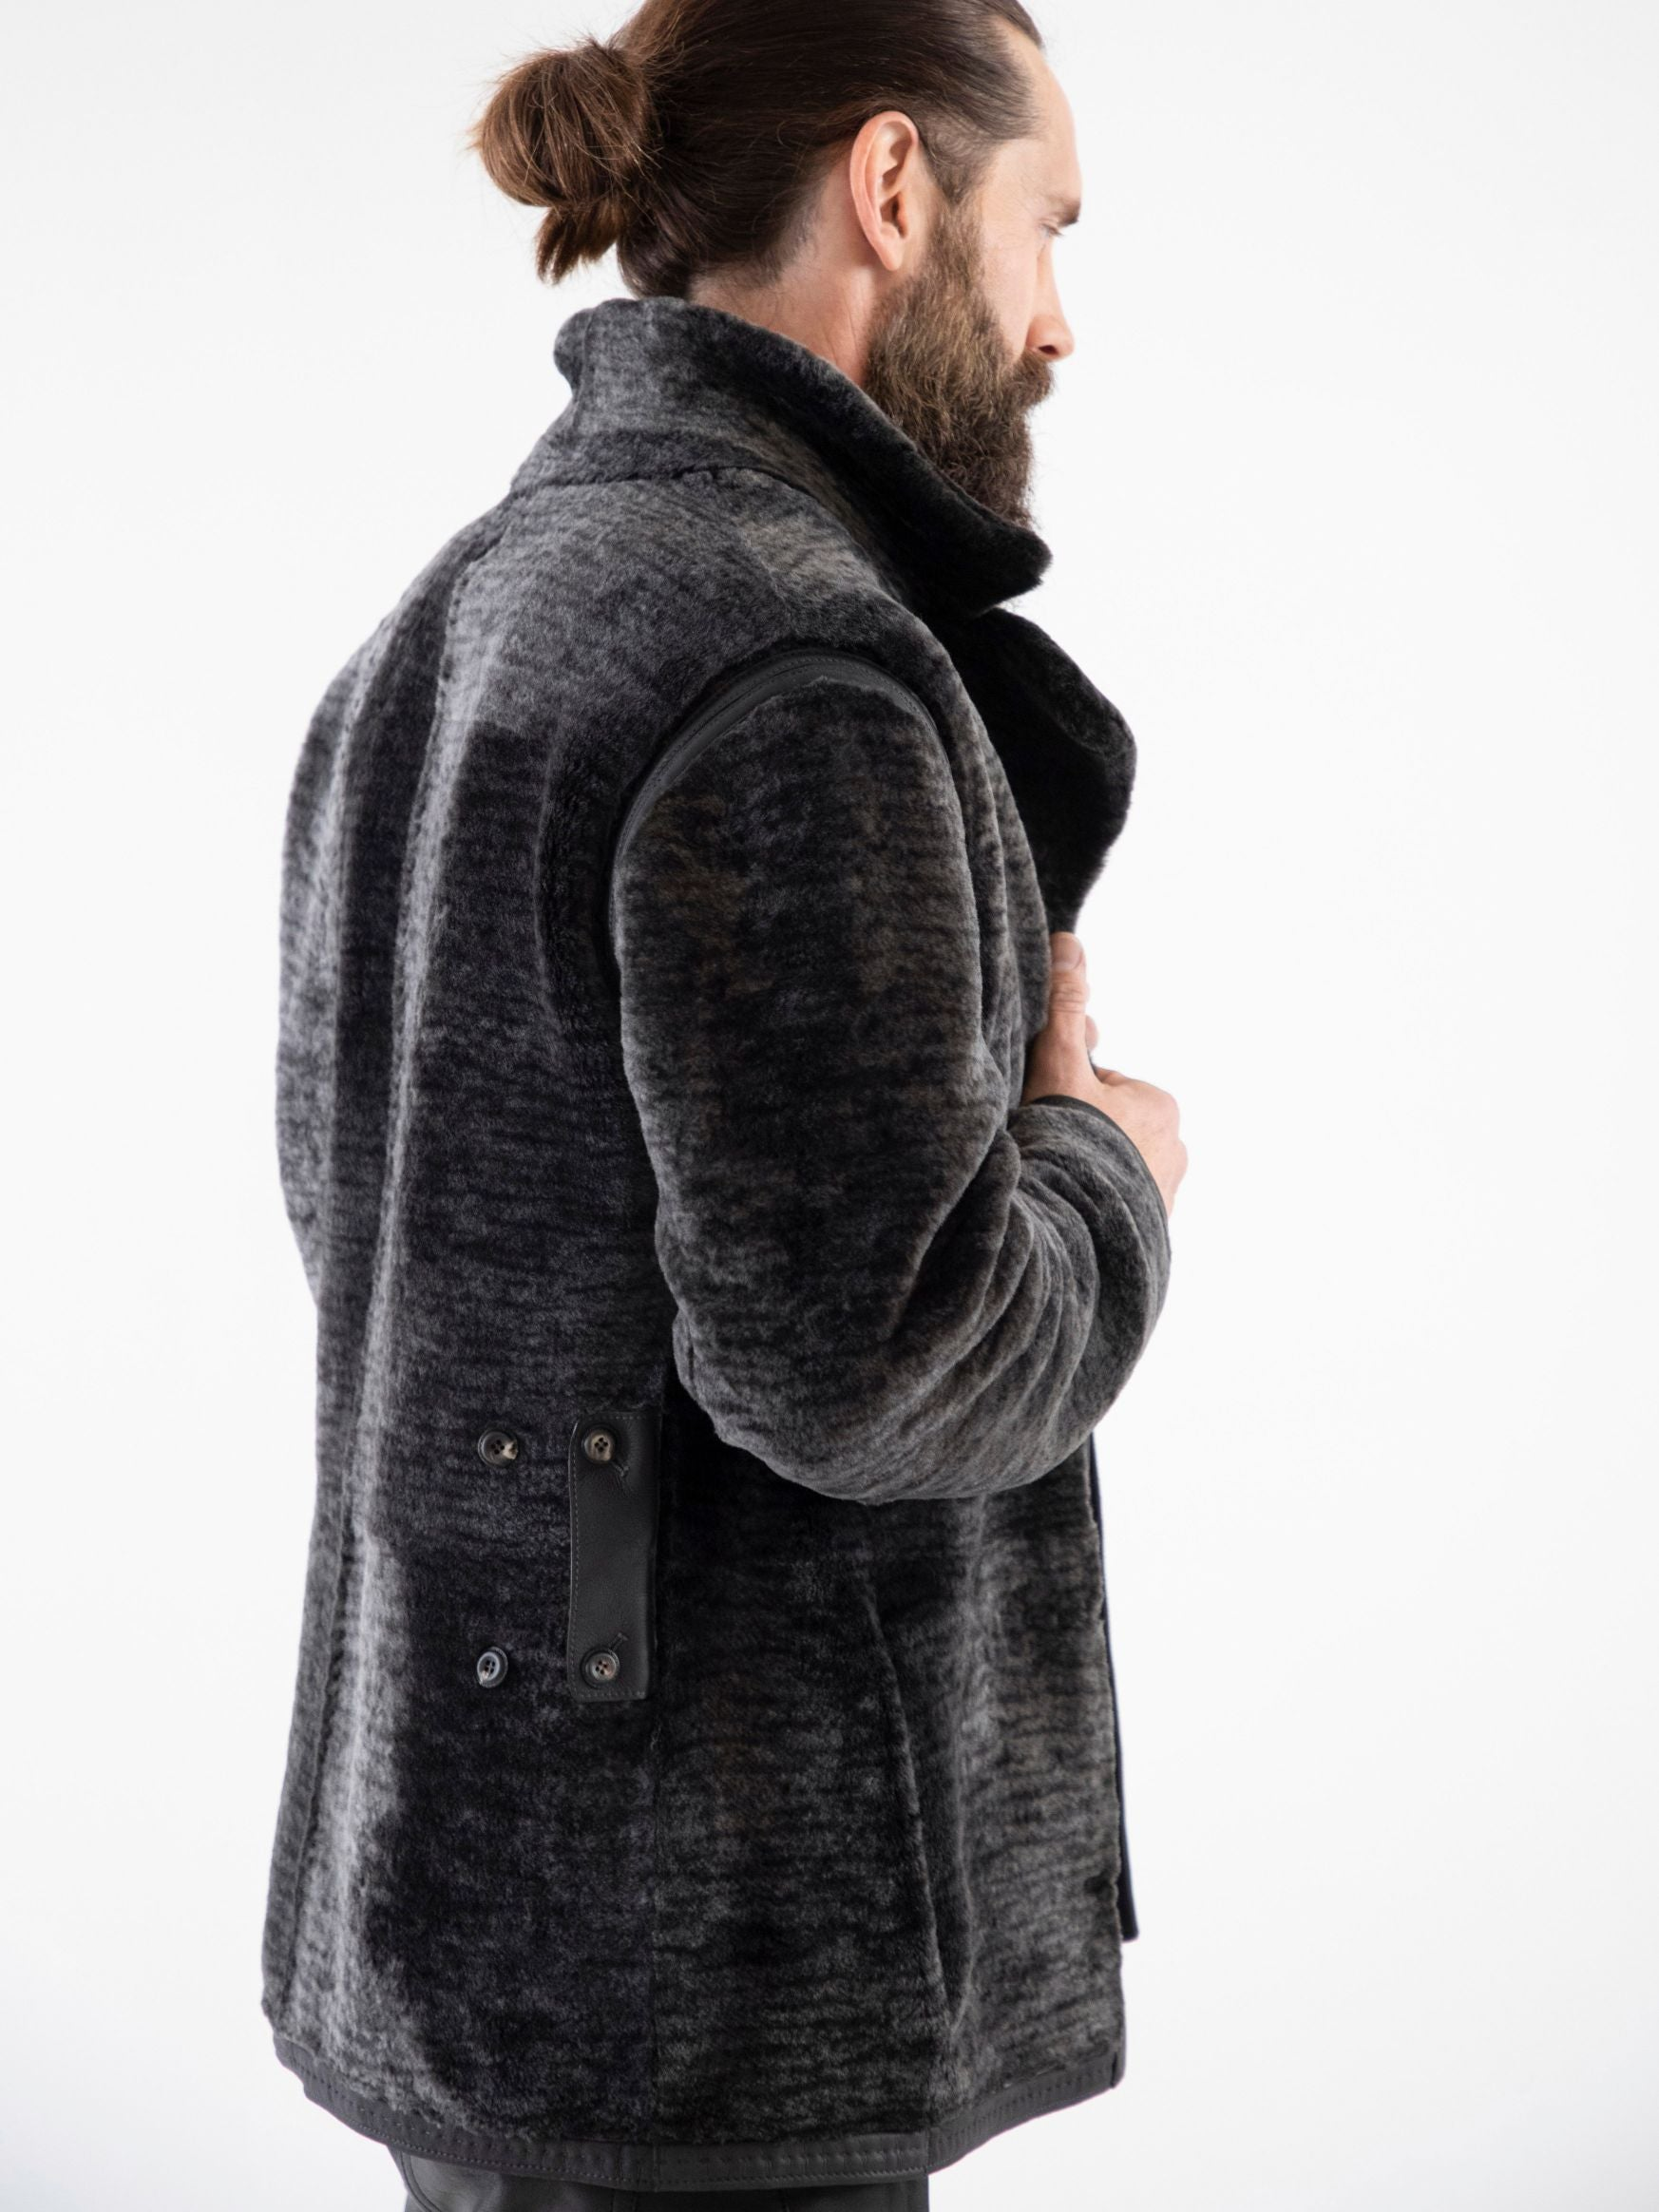 Fleece side of reversible shearling depicting relaxed latch